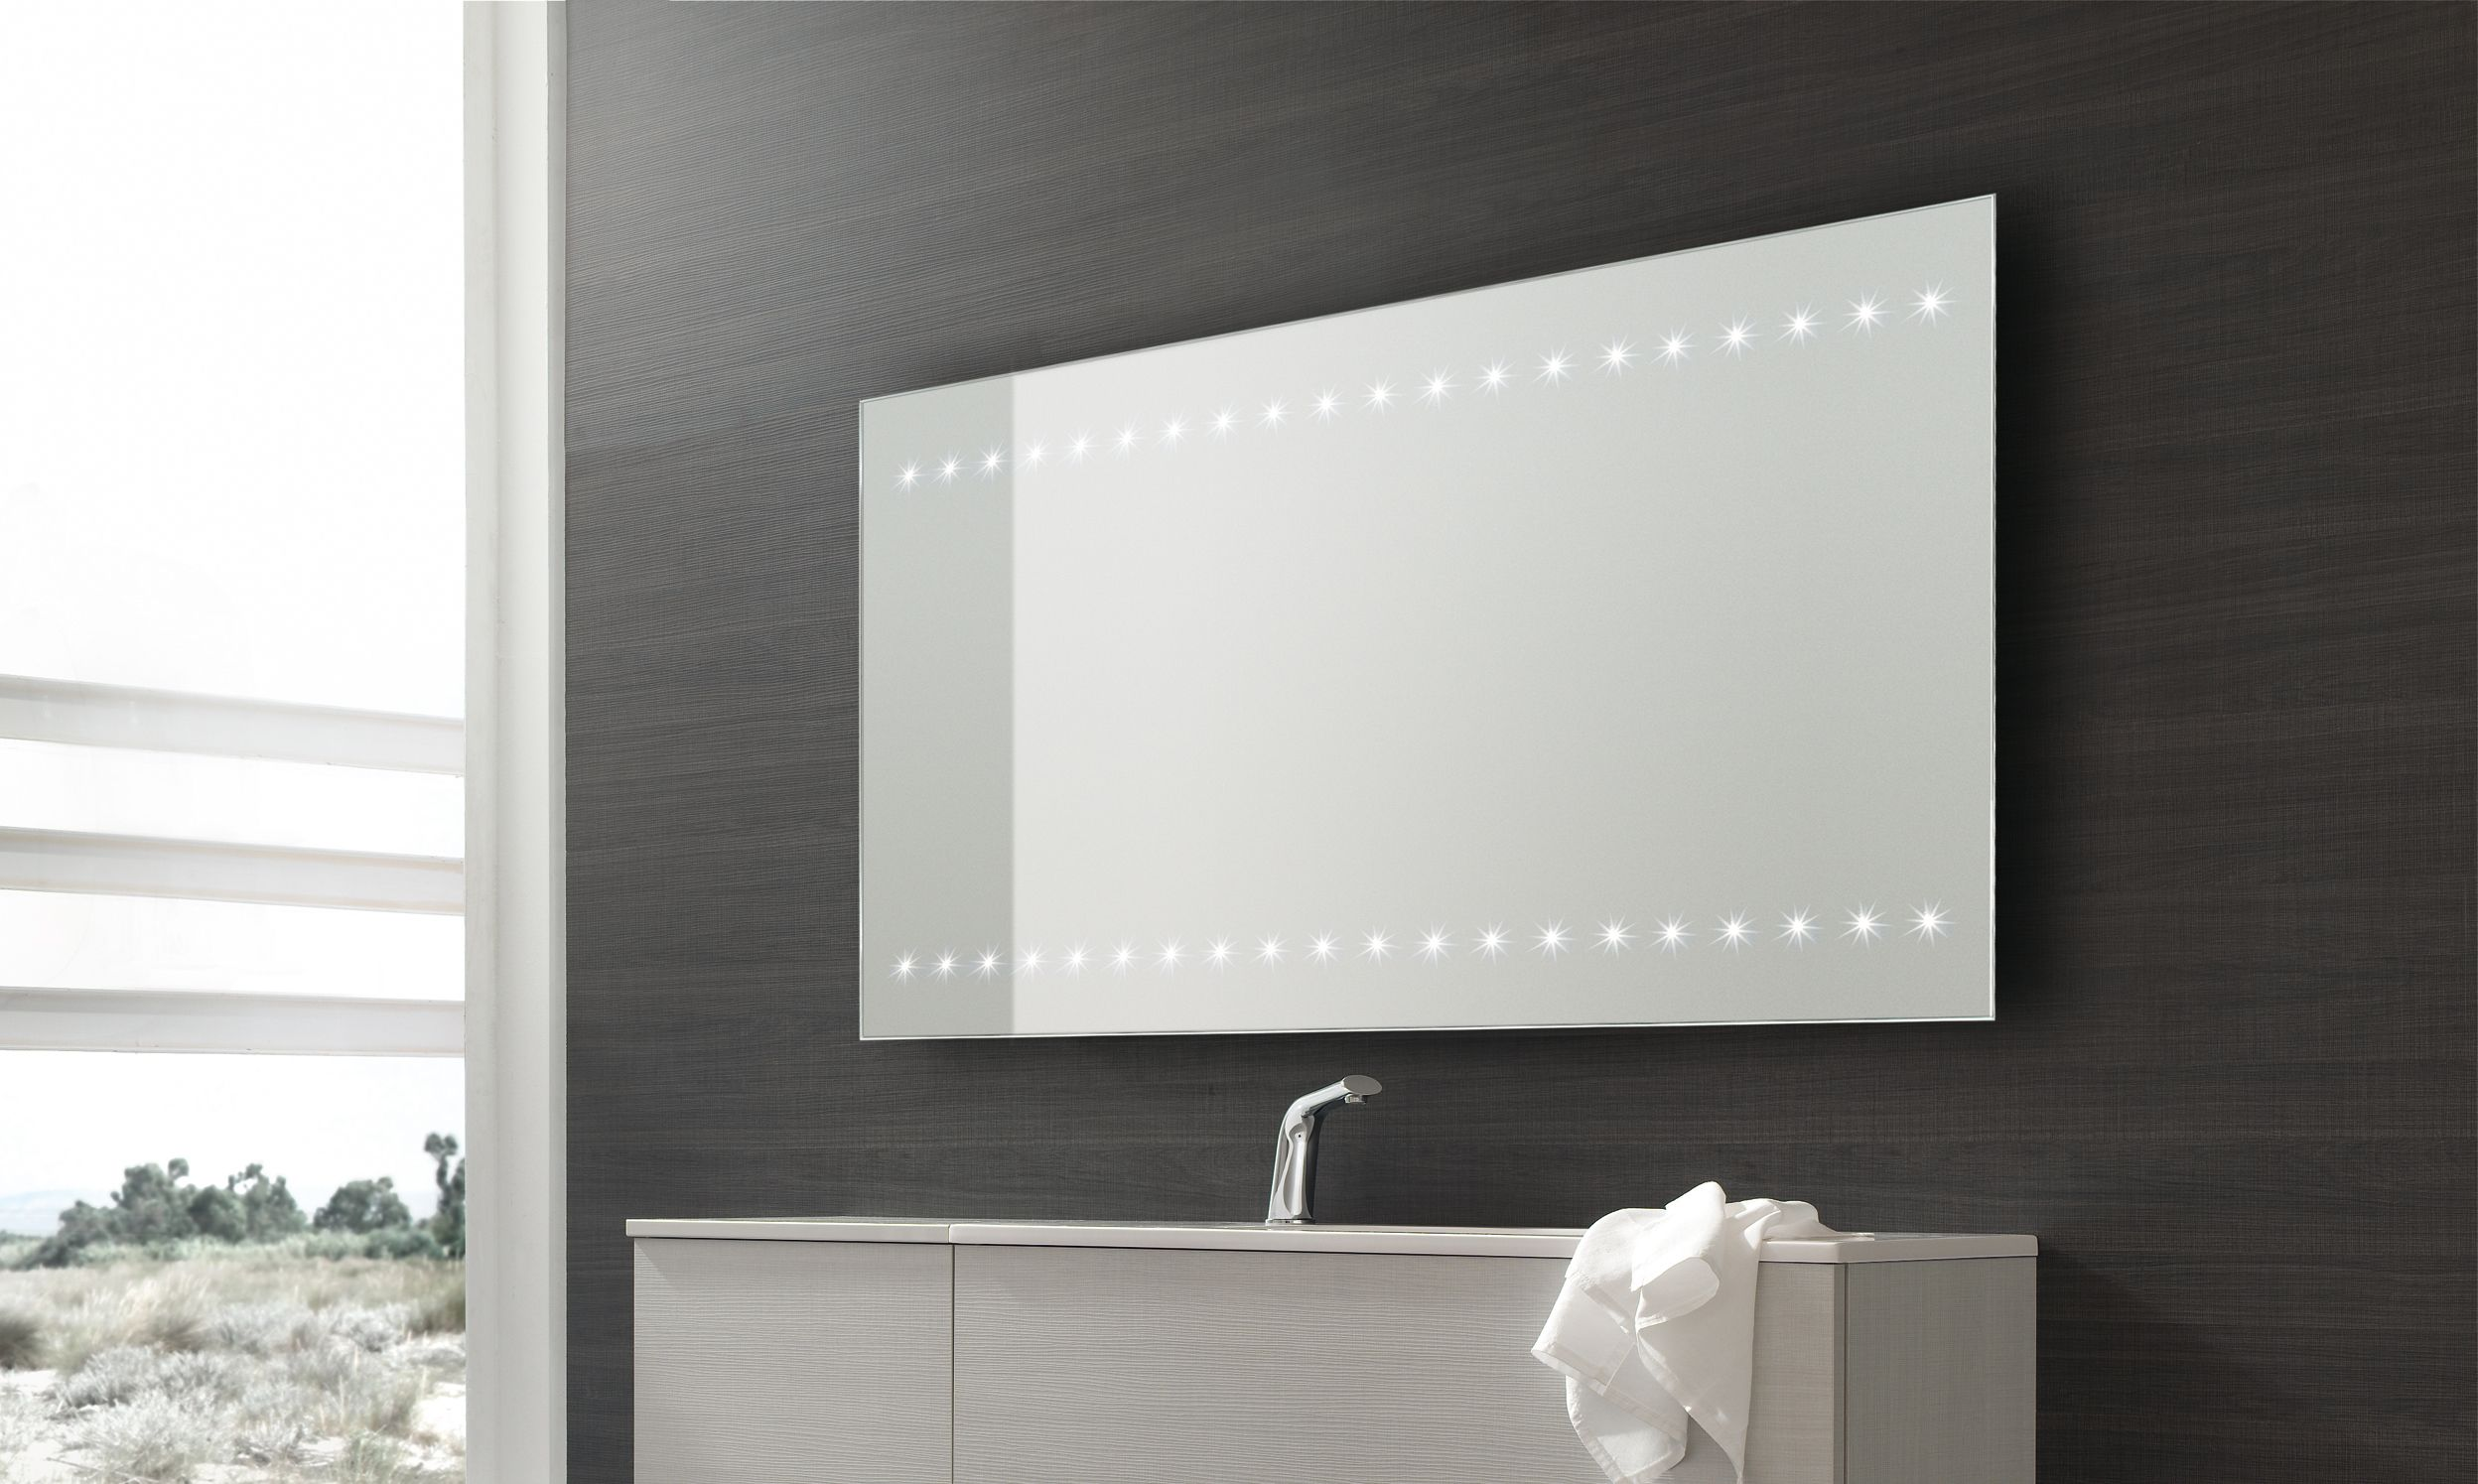 Luxury Bathroom Mirrors Online from Online Bathrooms UK | Mirrors ...